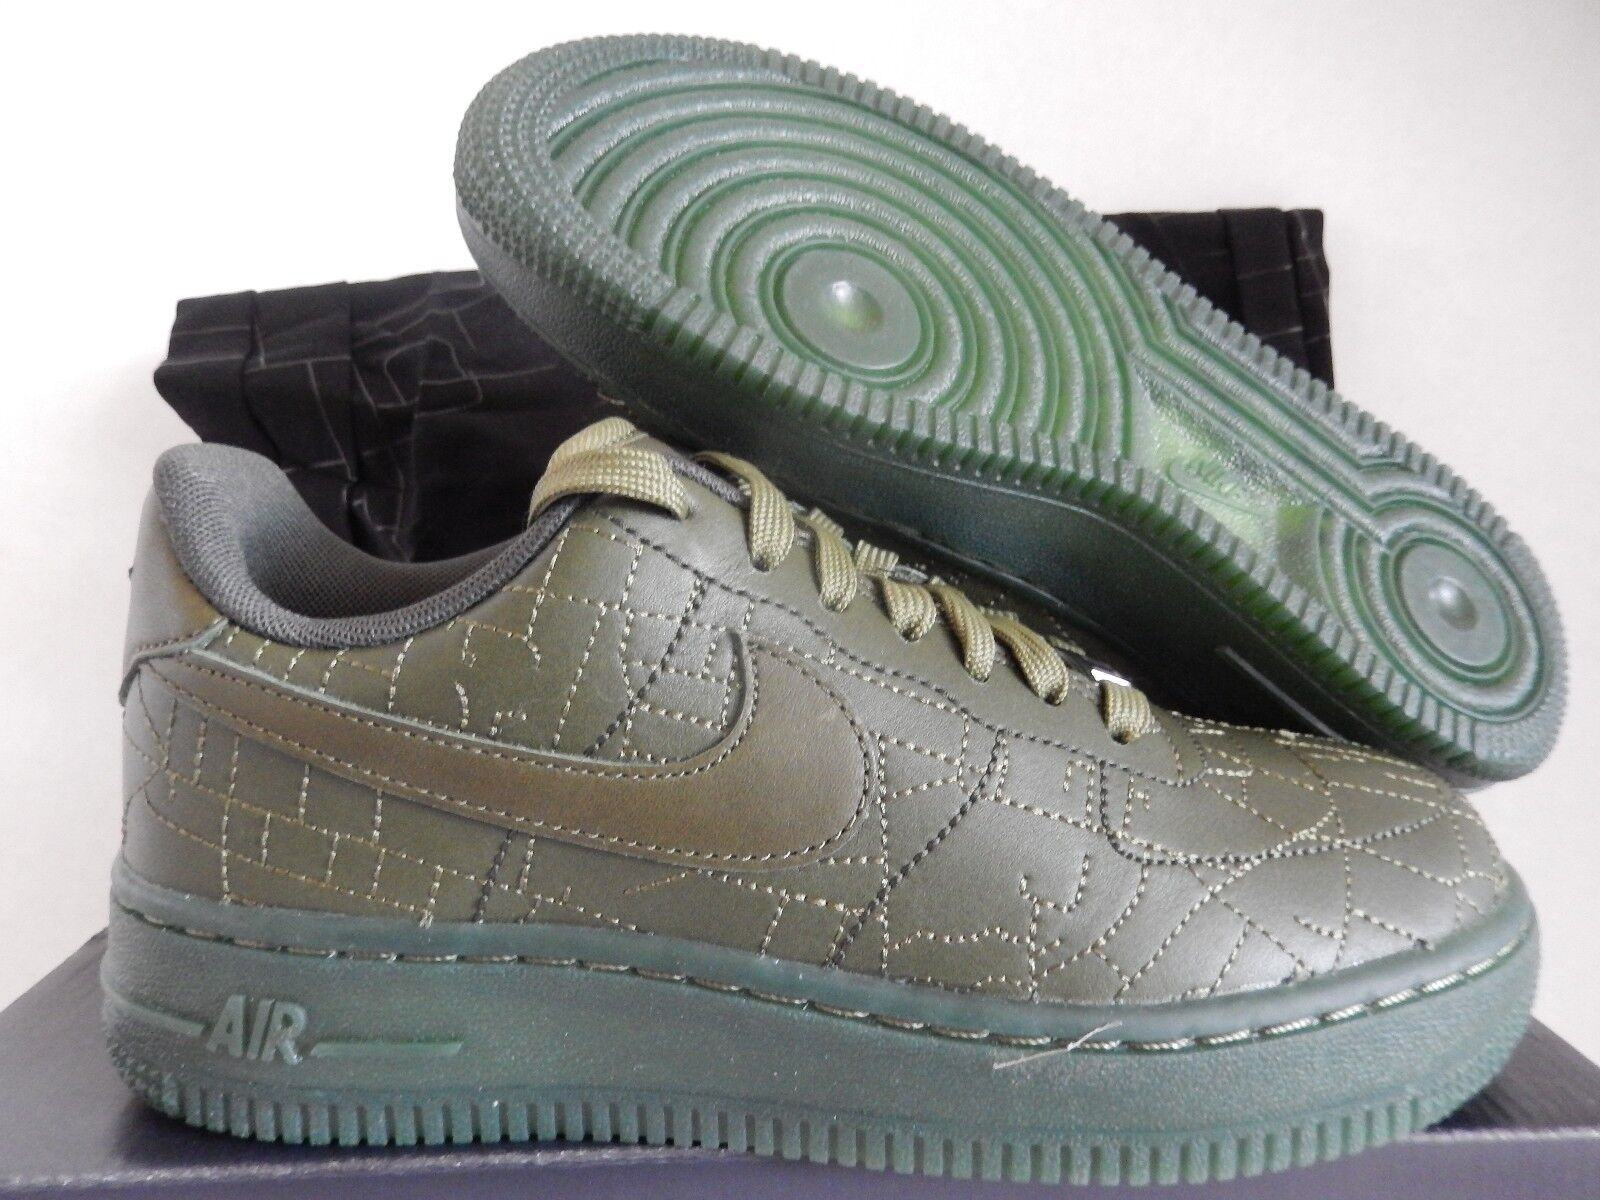 WMNS NIKE AIR FORCE 1 07 FW QS